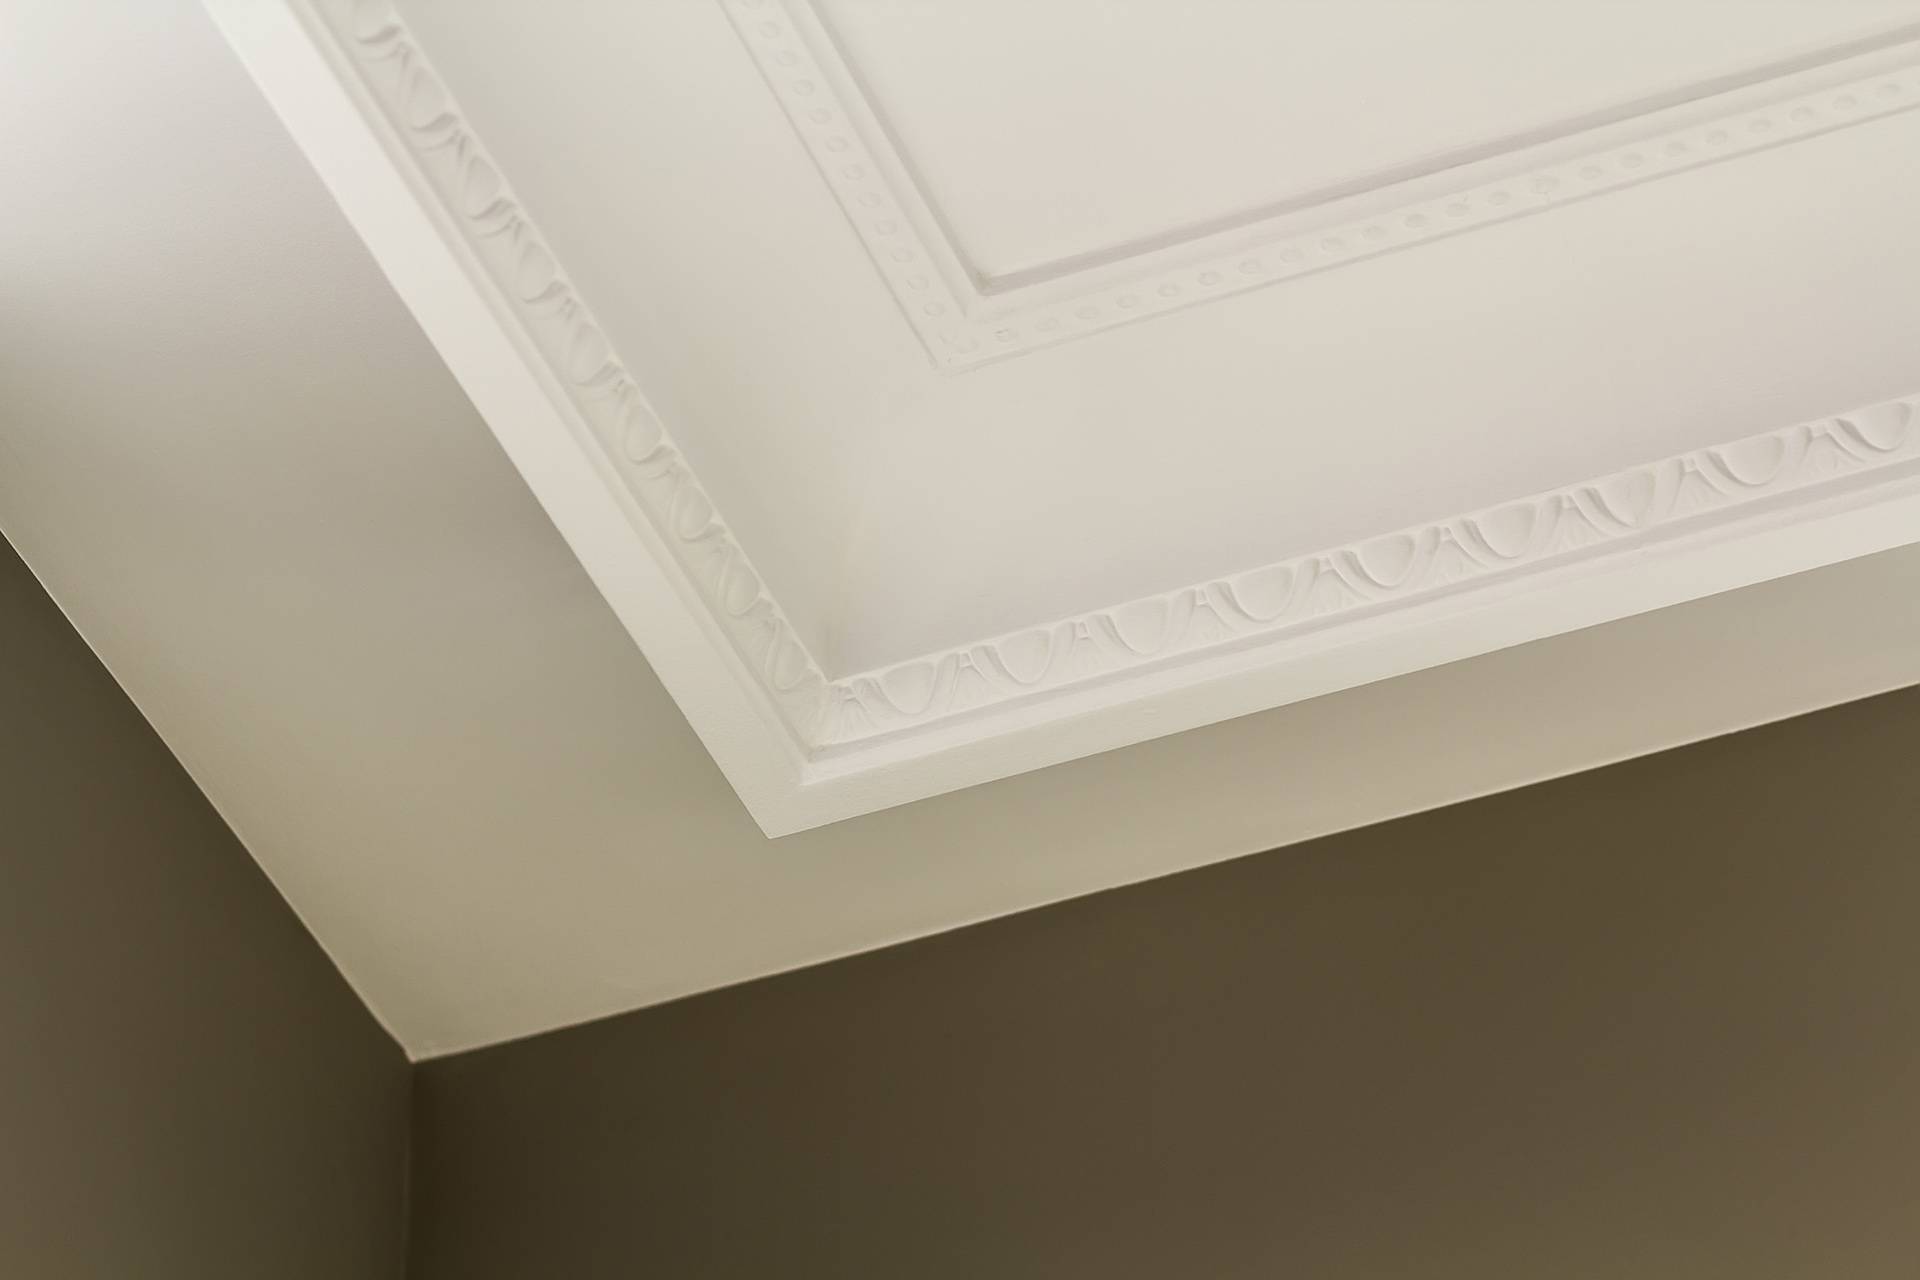 Skilled restorations and installations of ornate work